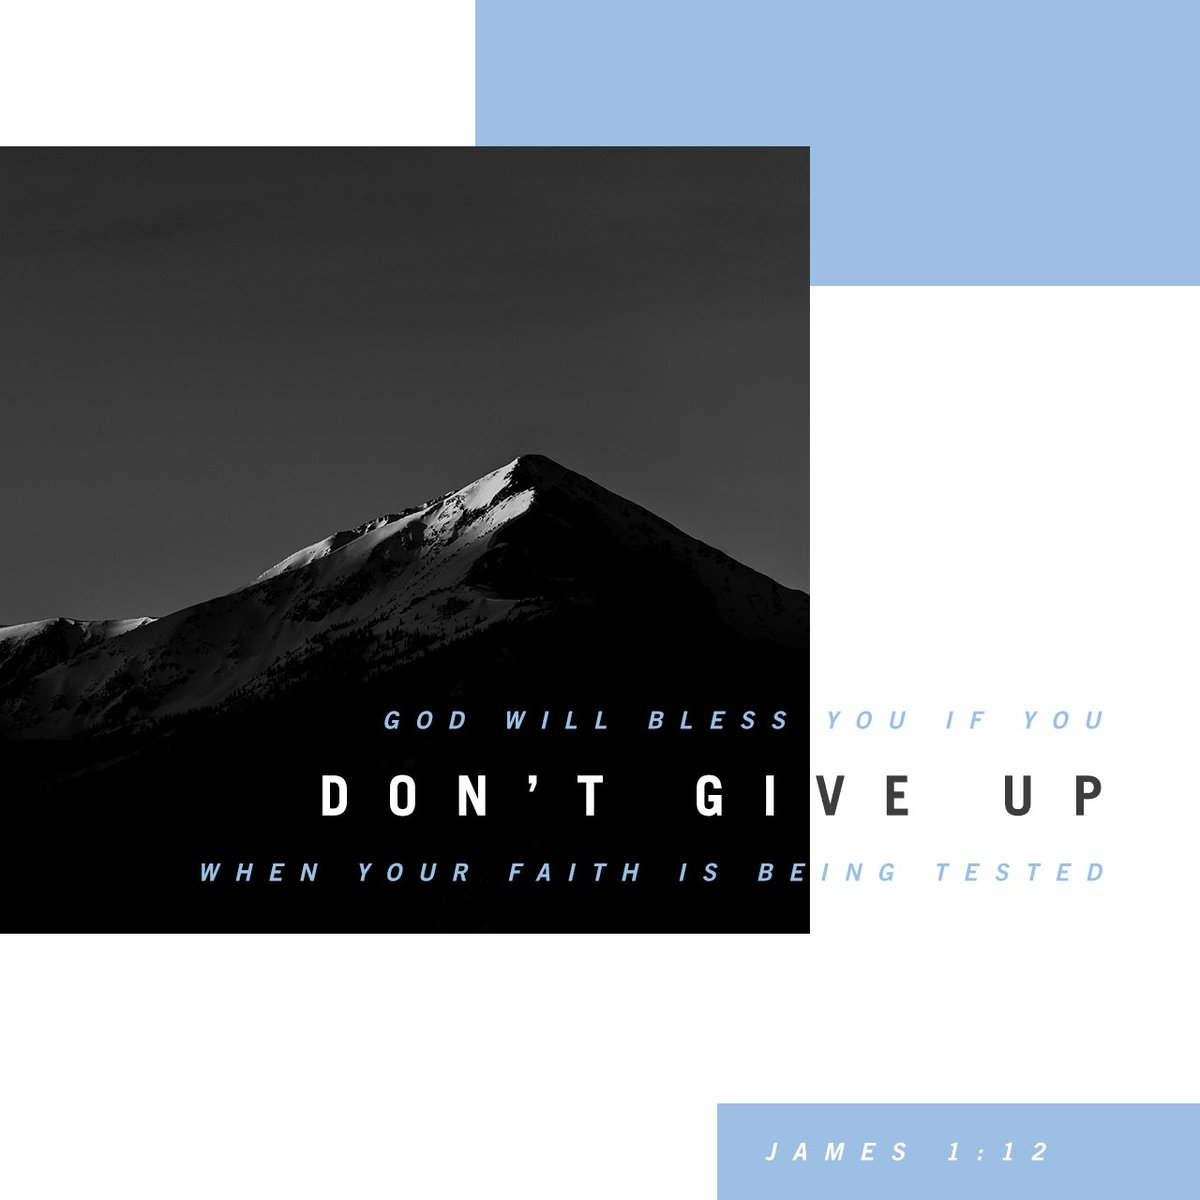 God will bless you, if you don't give up when your faith is being tested. He will reward… https://t.co/RgWhMko4fr https://t.co/9wsFW6MKc0